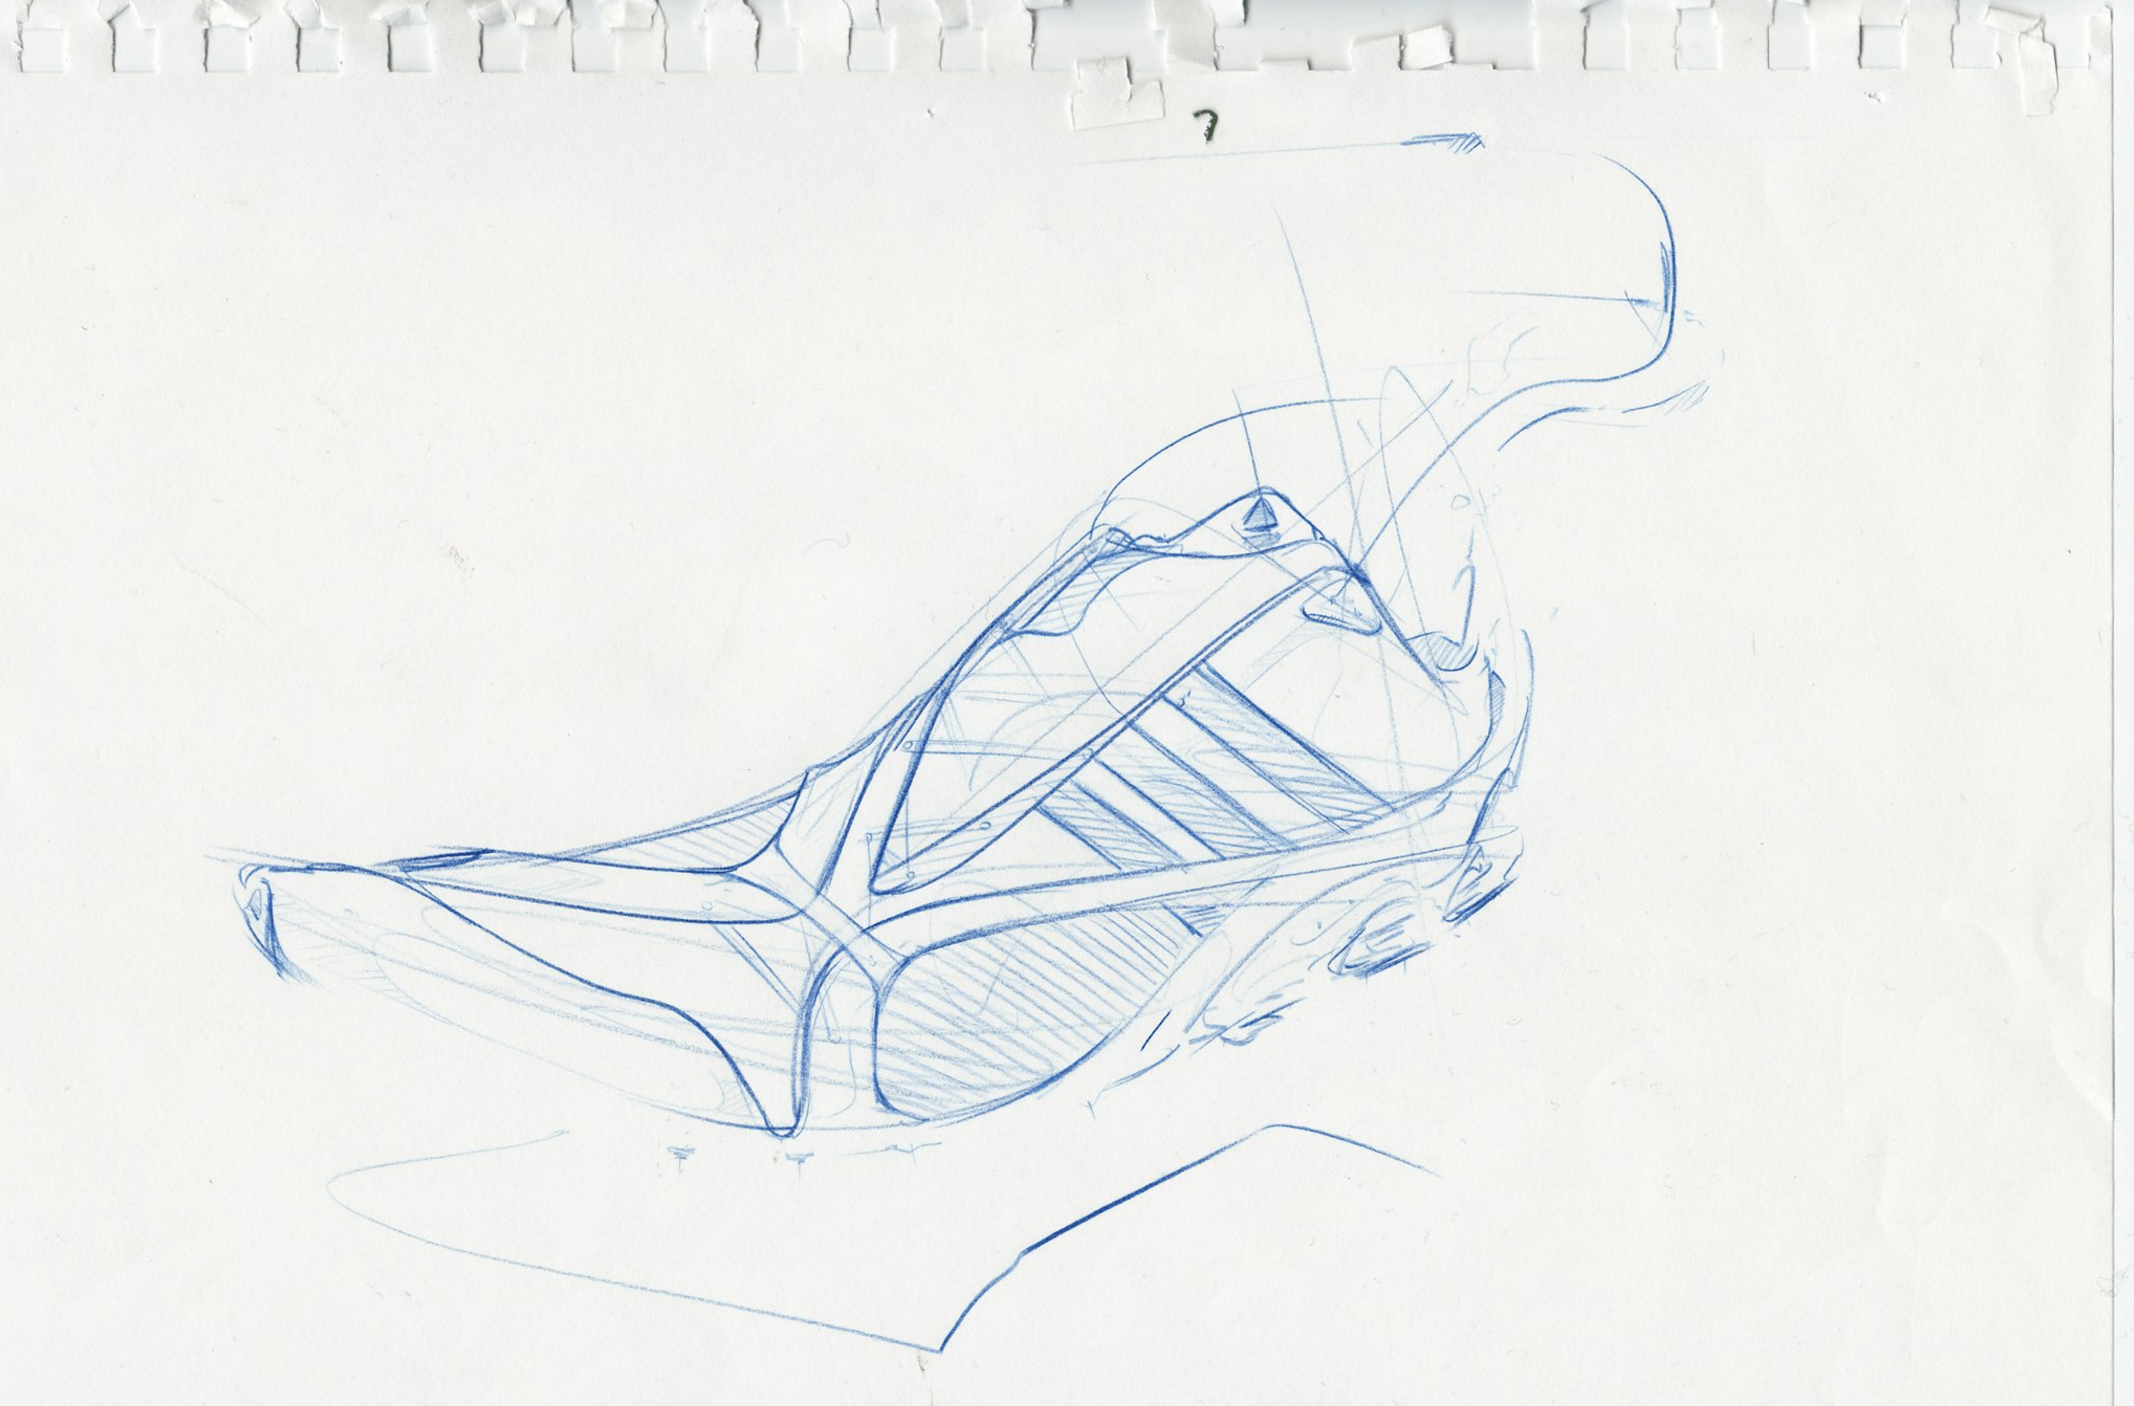 Adidas sketch blue lead 0.7.png